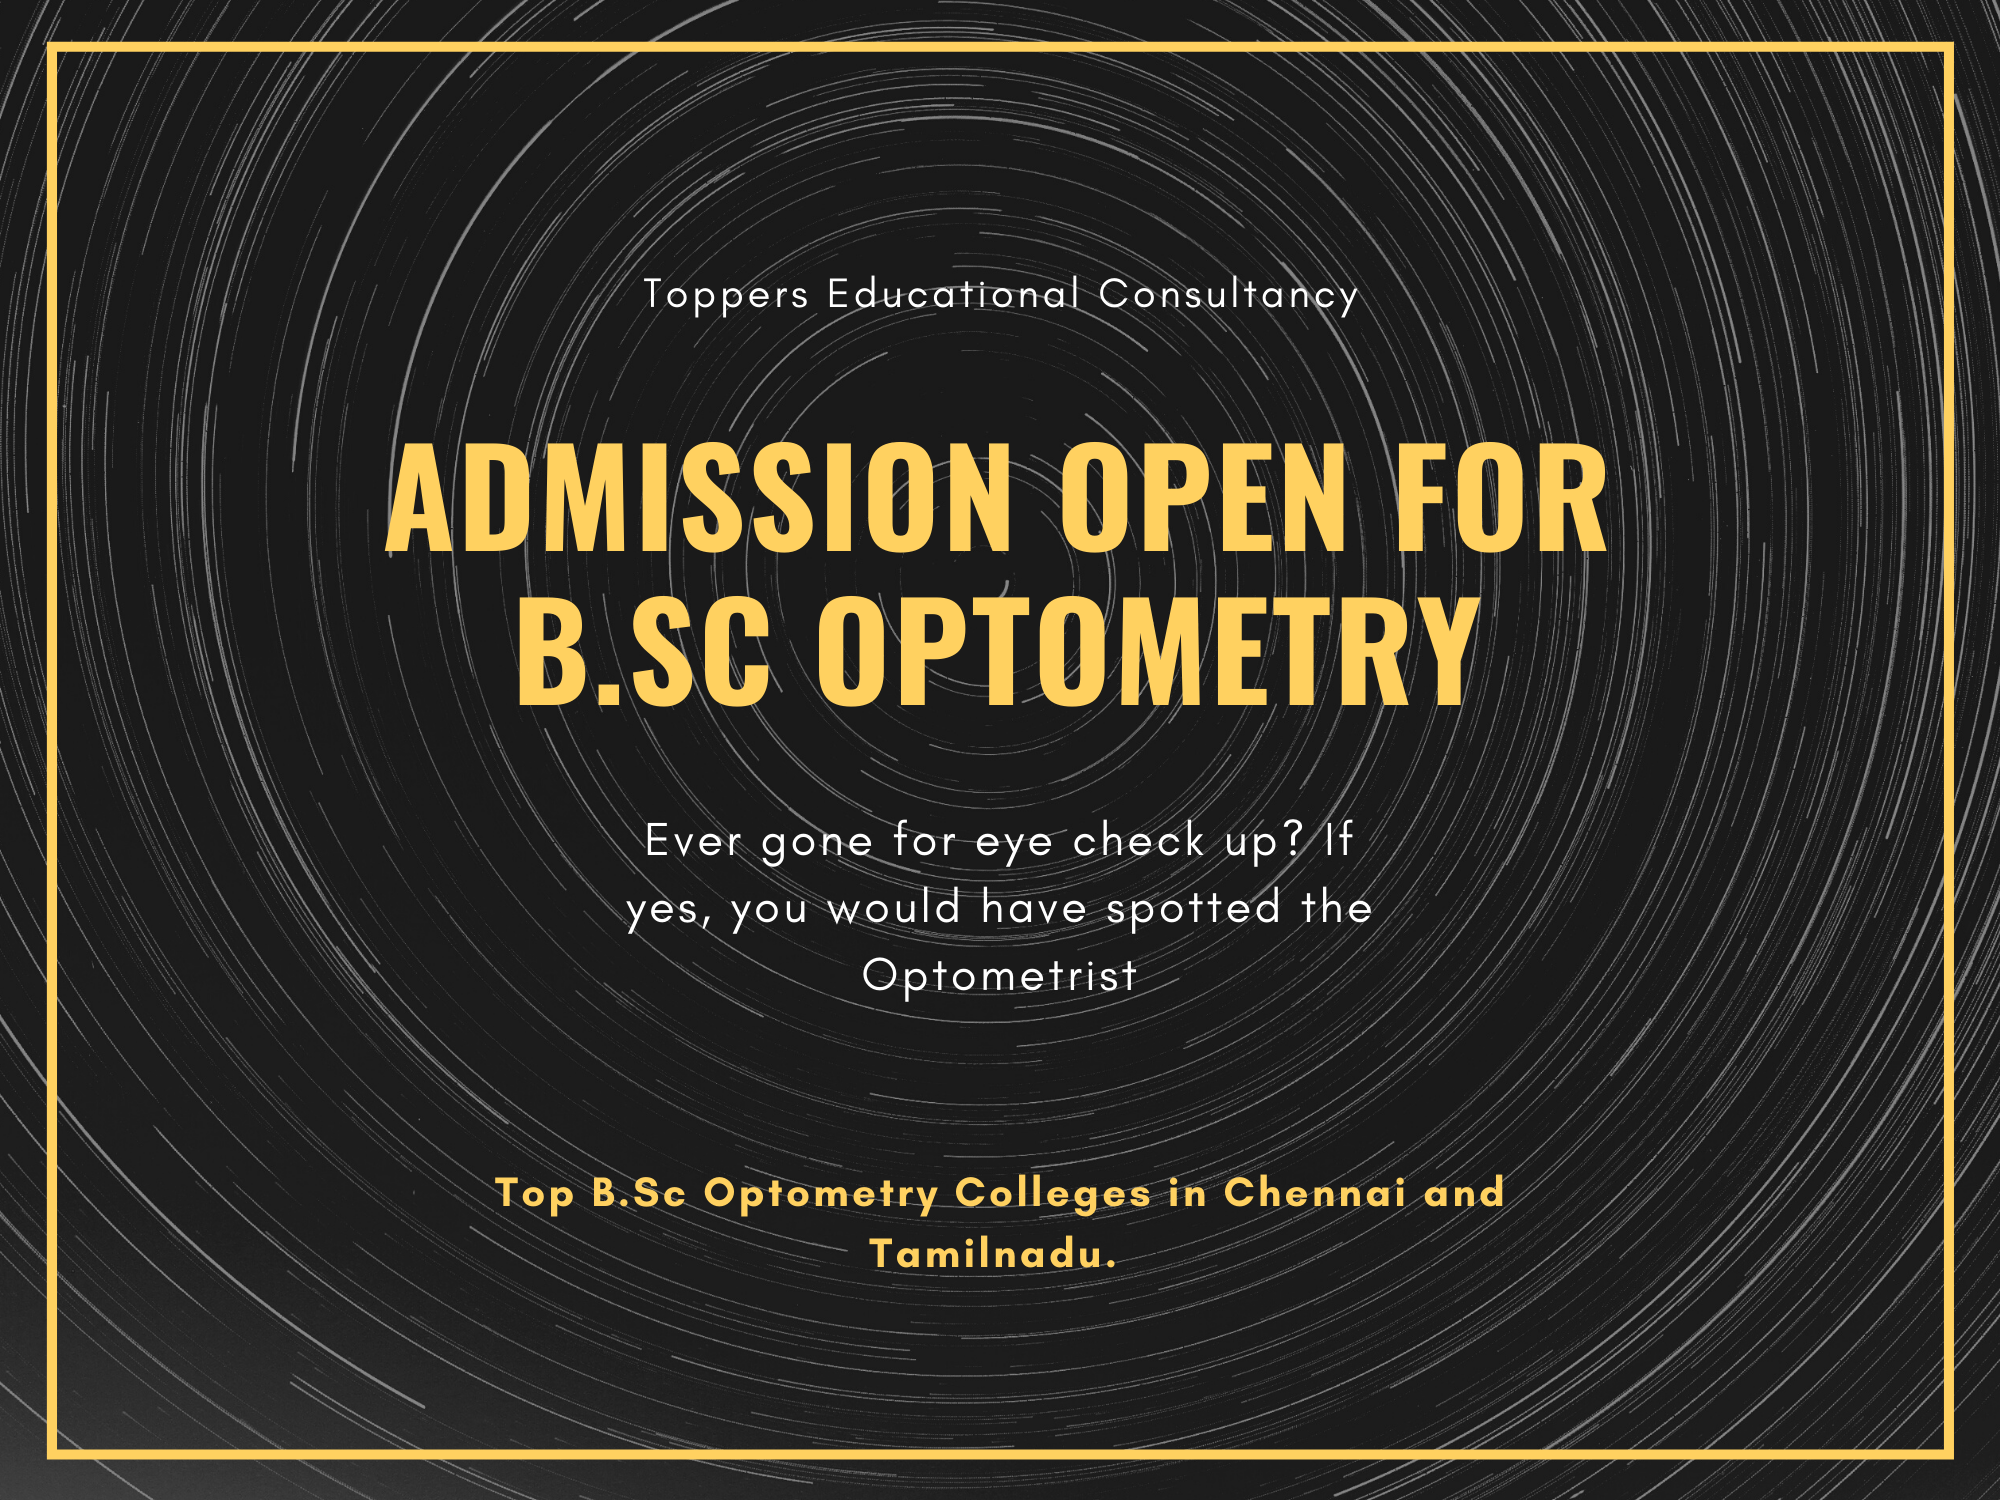 Top B.Sc Optometry Colleges in Chennai and Tamilnadu.